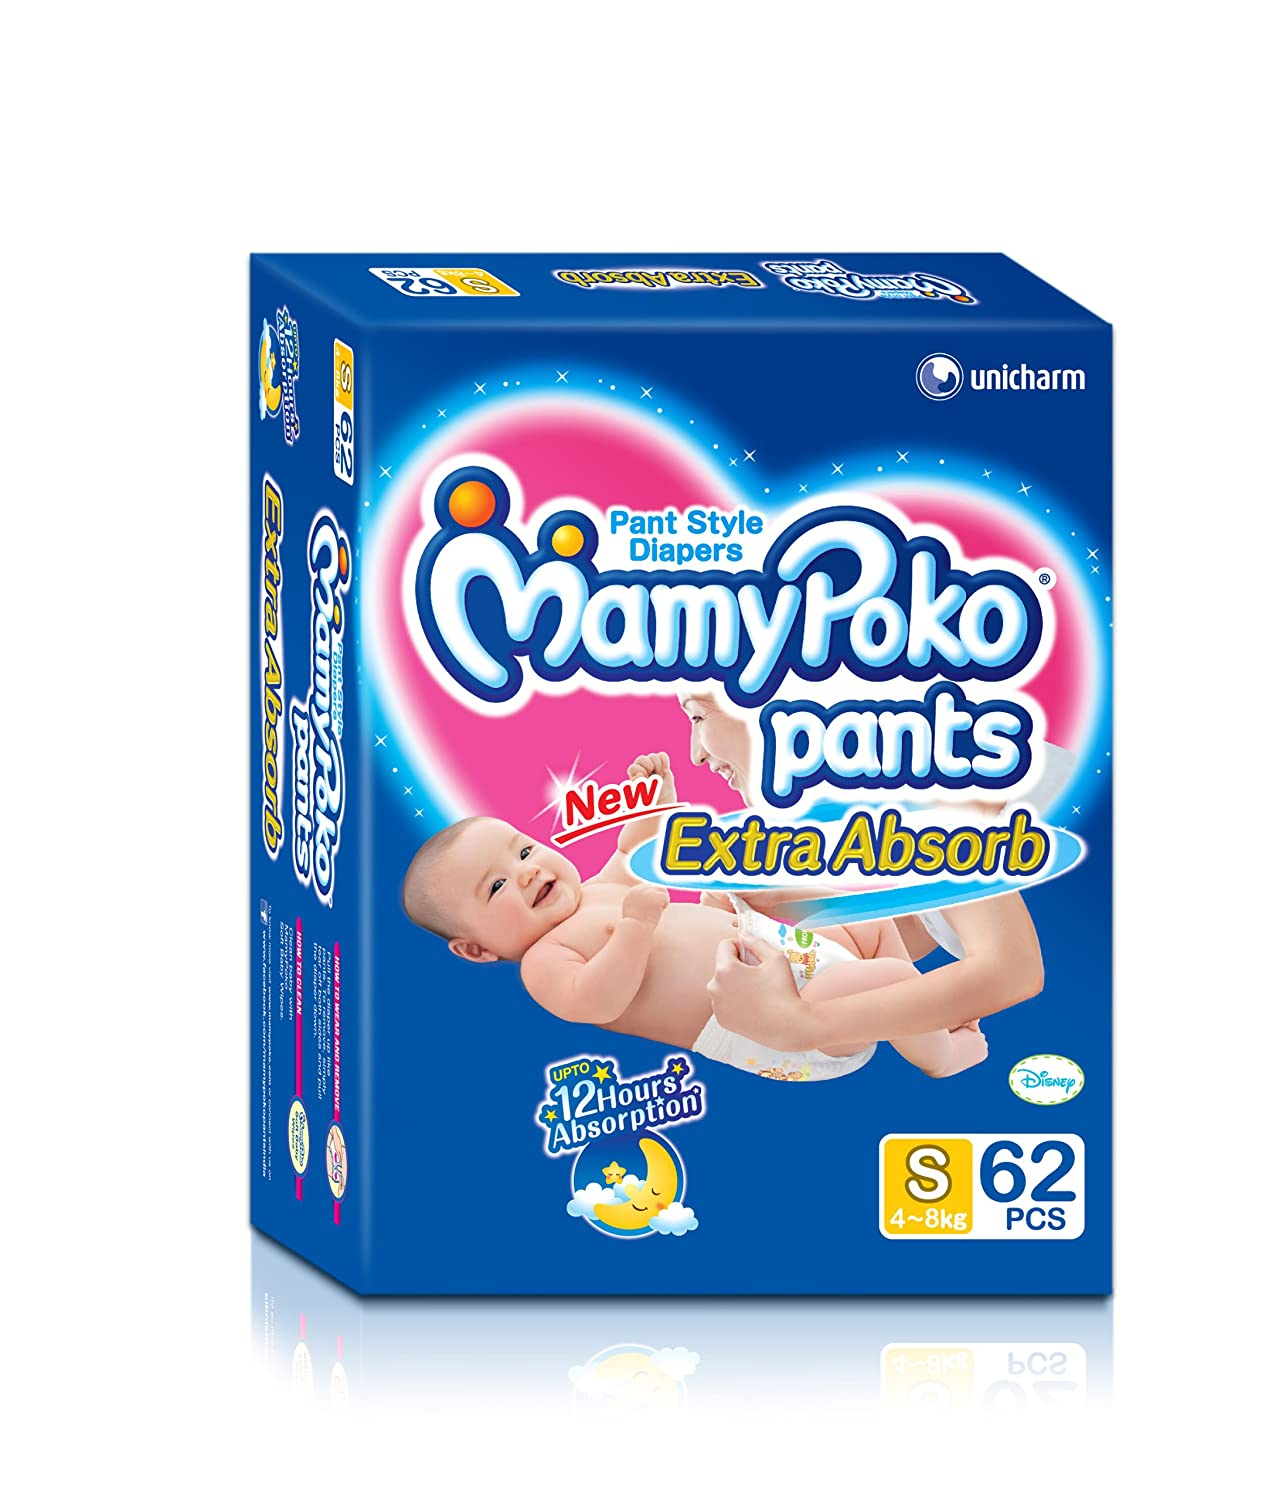 Harga Dan Spek Mamypoko Popok Pants Extra Dry Xl 26 Update 2018 Mamy Poko Xxl24 Buy Pant Style Small Size Diapers 62 Count Online At Low